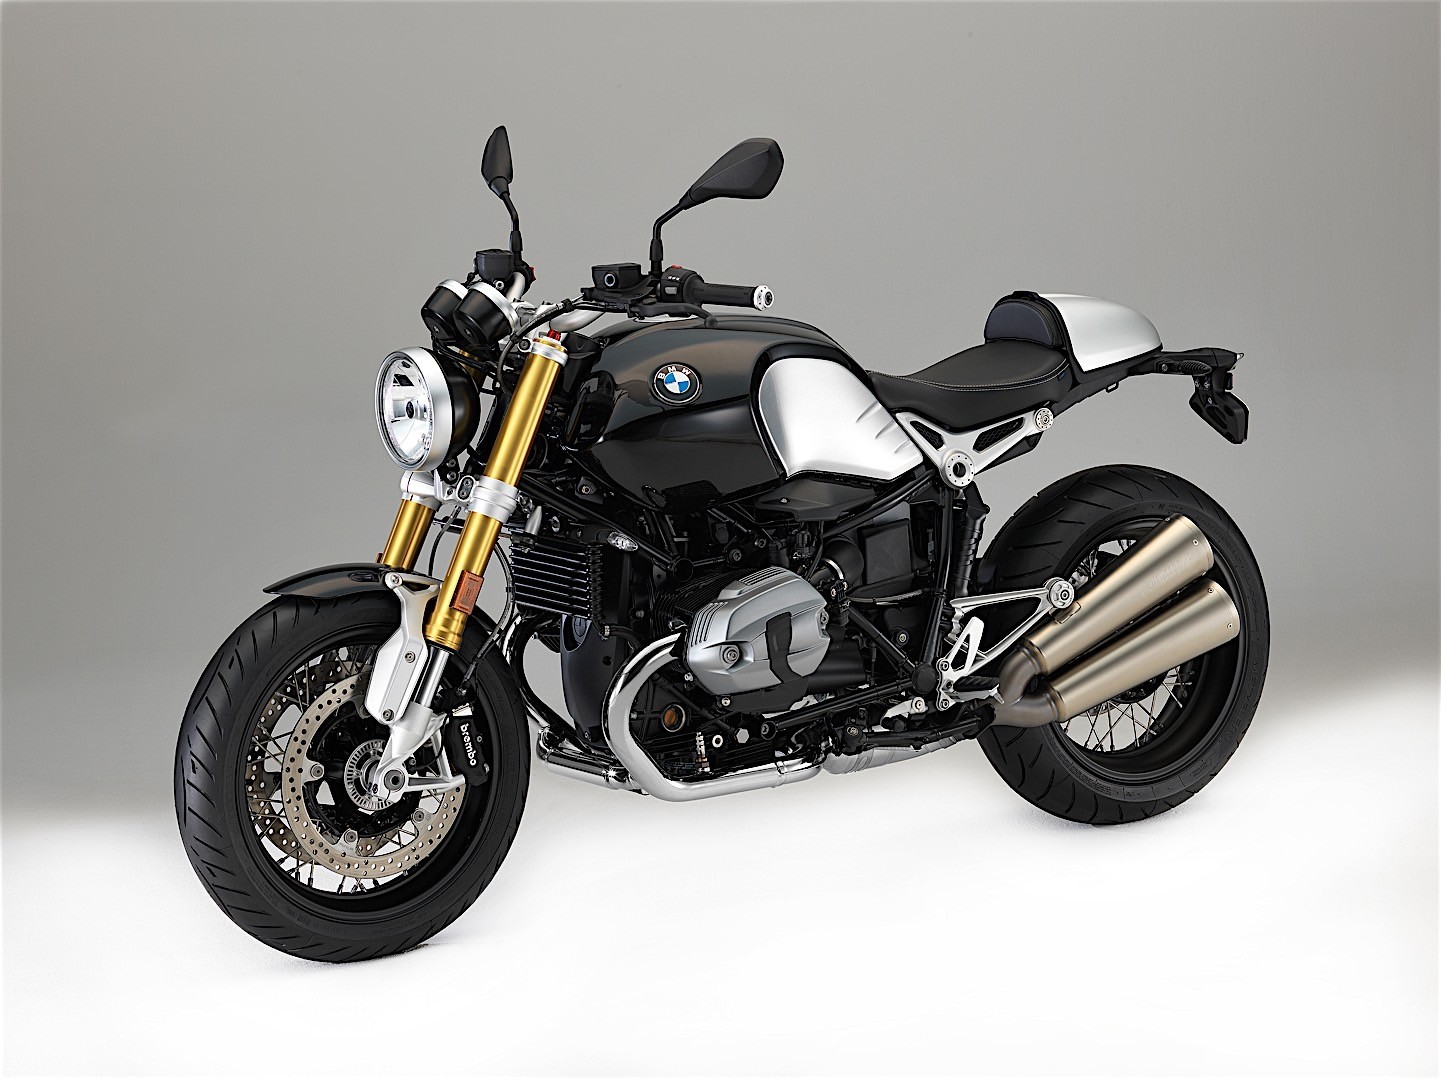 bmw g310r scrambler shows real potential and is a feasible project autoevolution. Black Bedroom Furniture Sets. Home Design Ideas